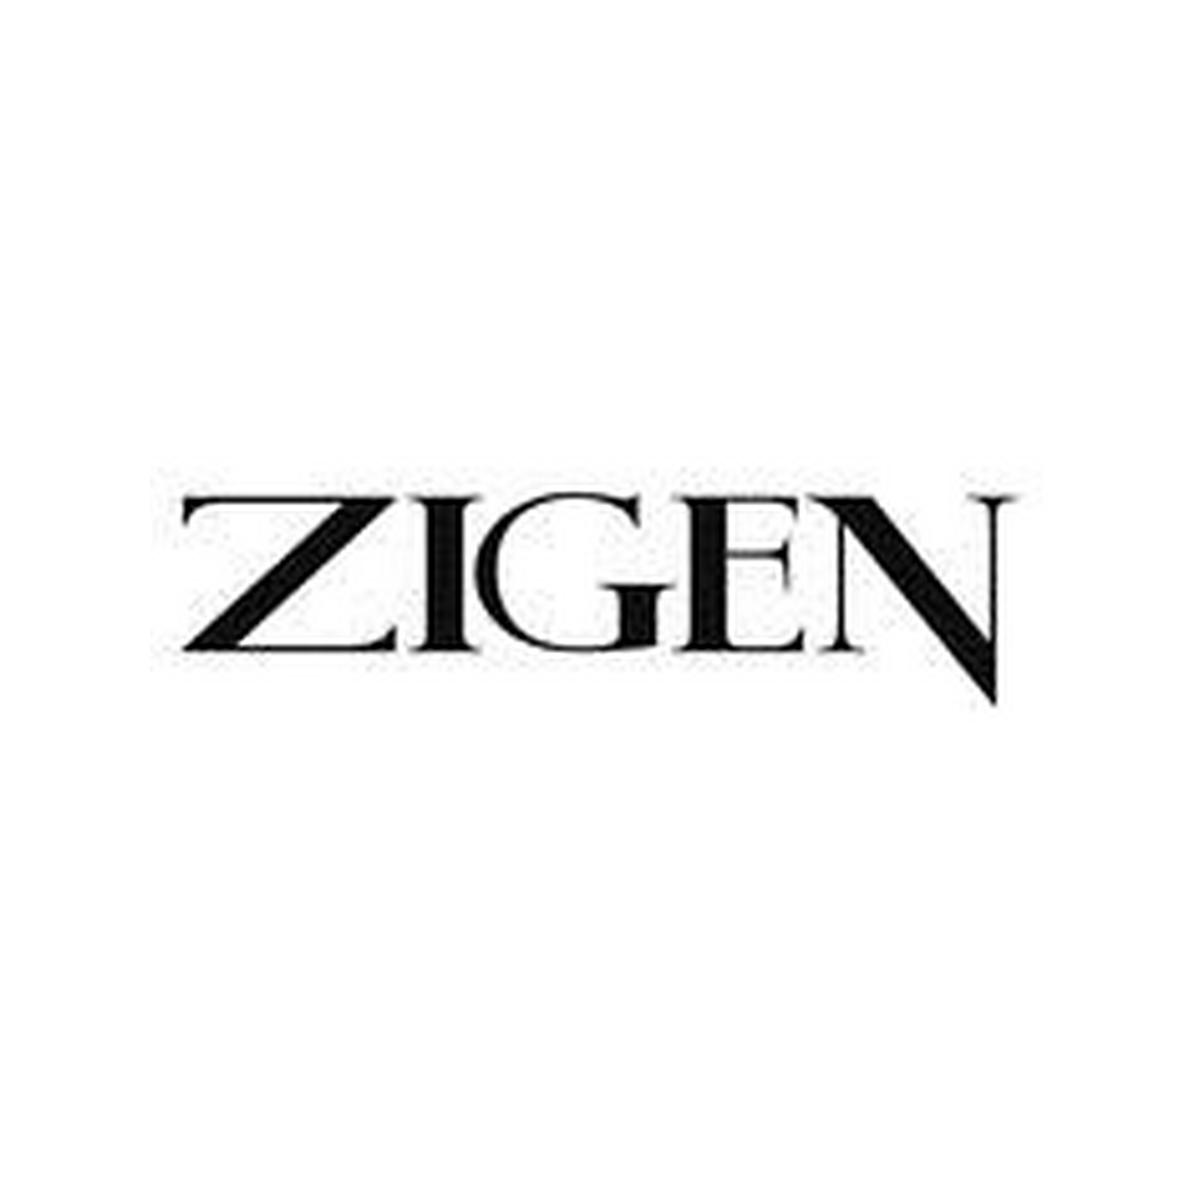 Zigen HDMI 2-IN.2-OUT CARD MODULAR MATRIX I/O (4K/2K) HX-HH-R